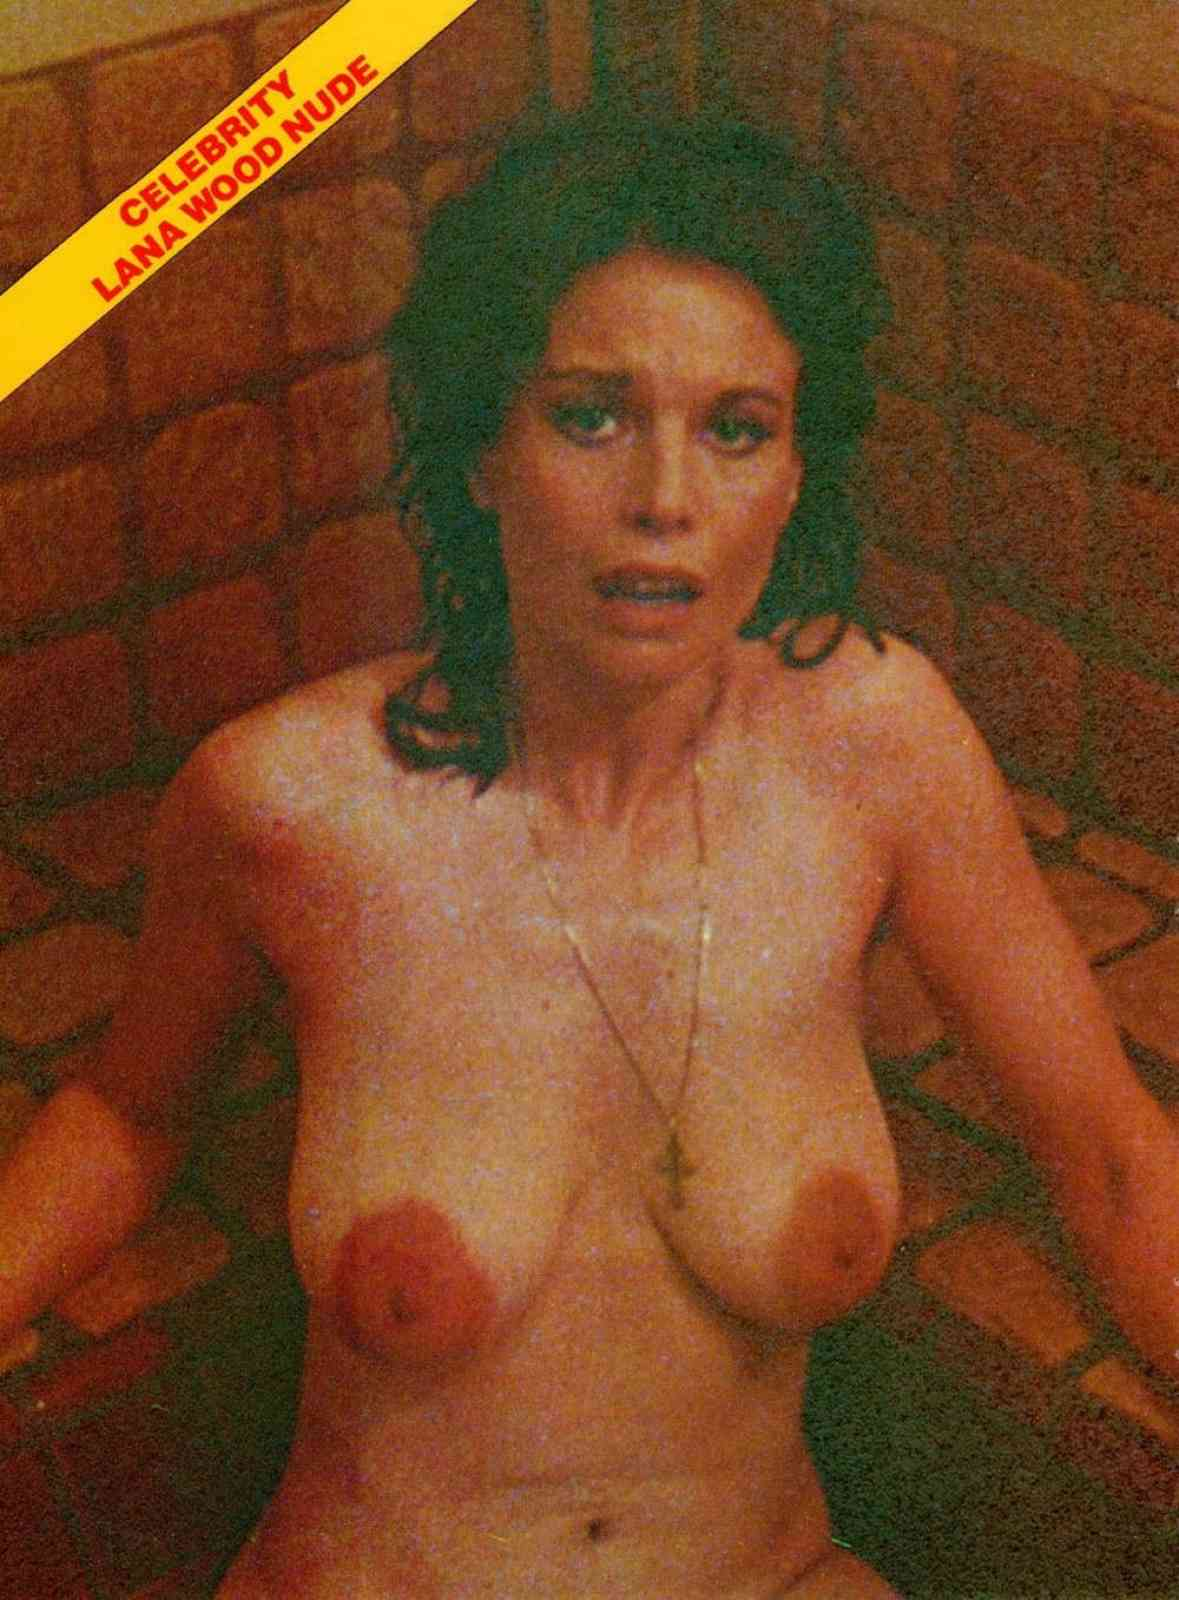 Can read Nude lana wood in pinkworld sorry